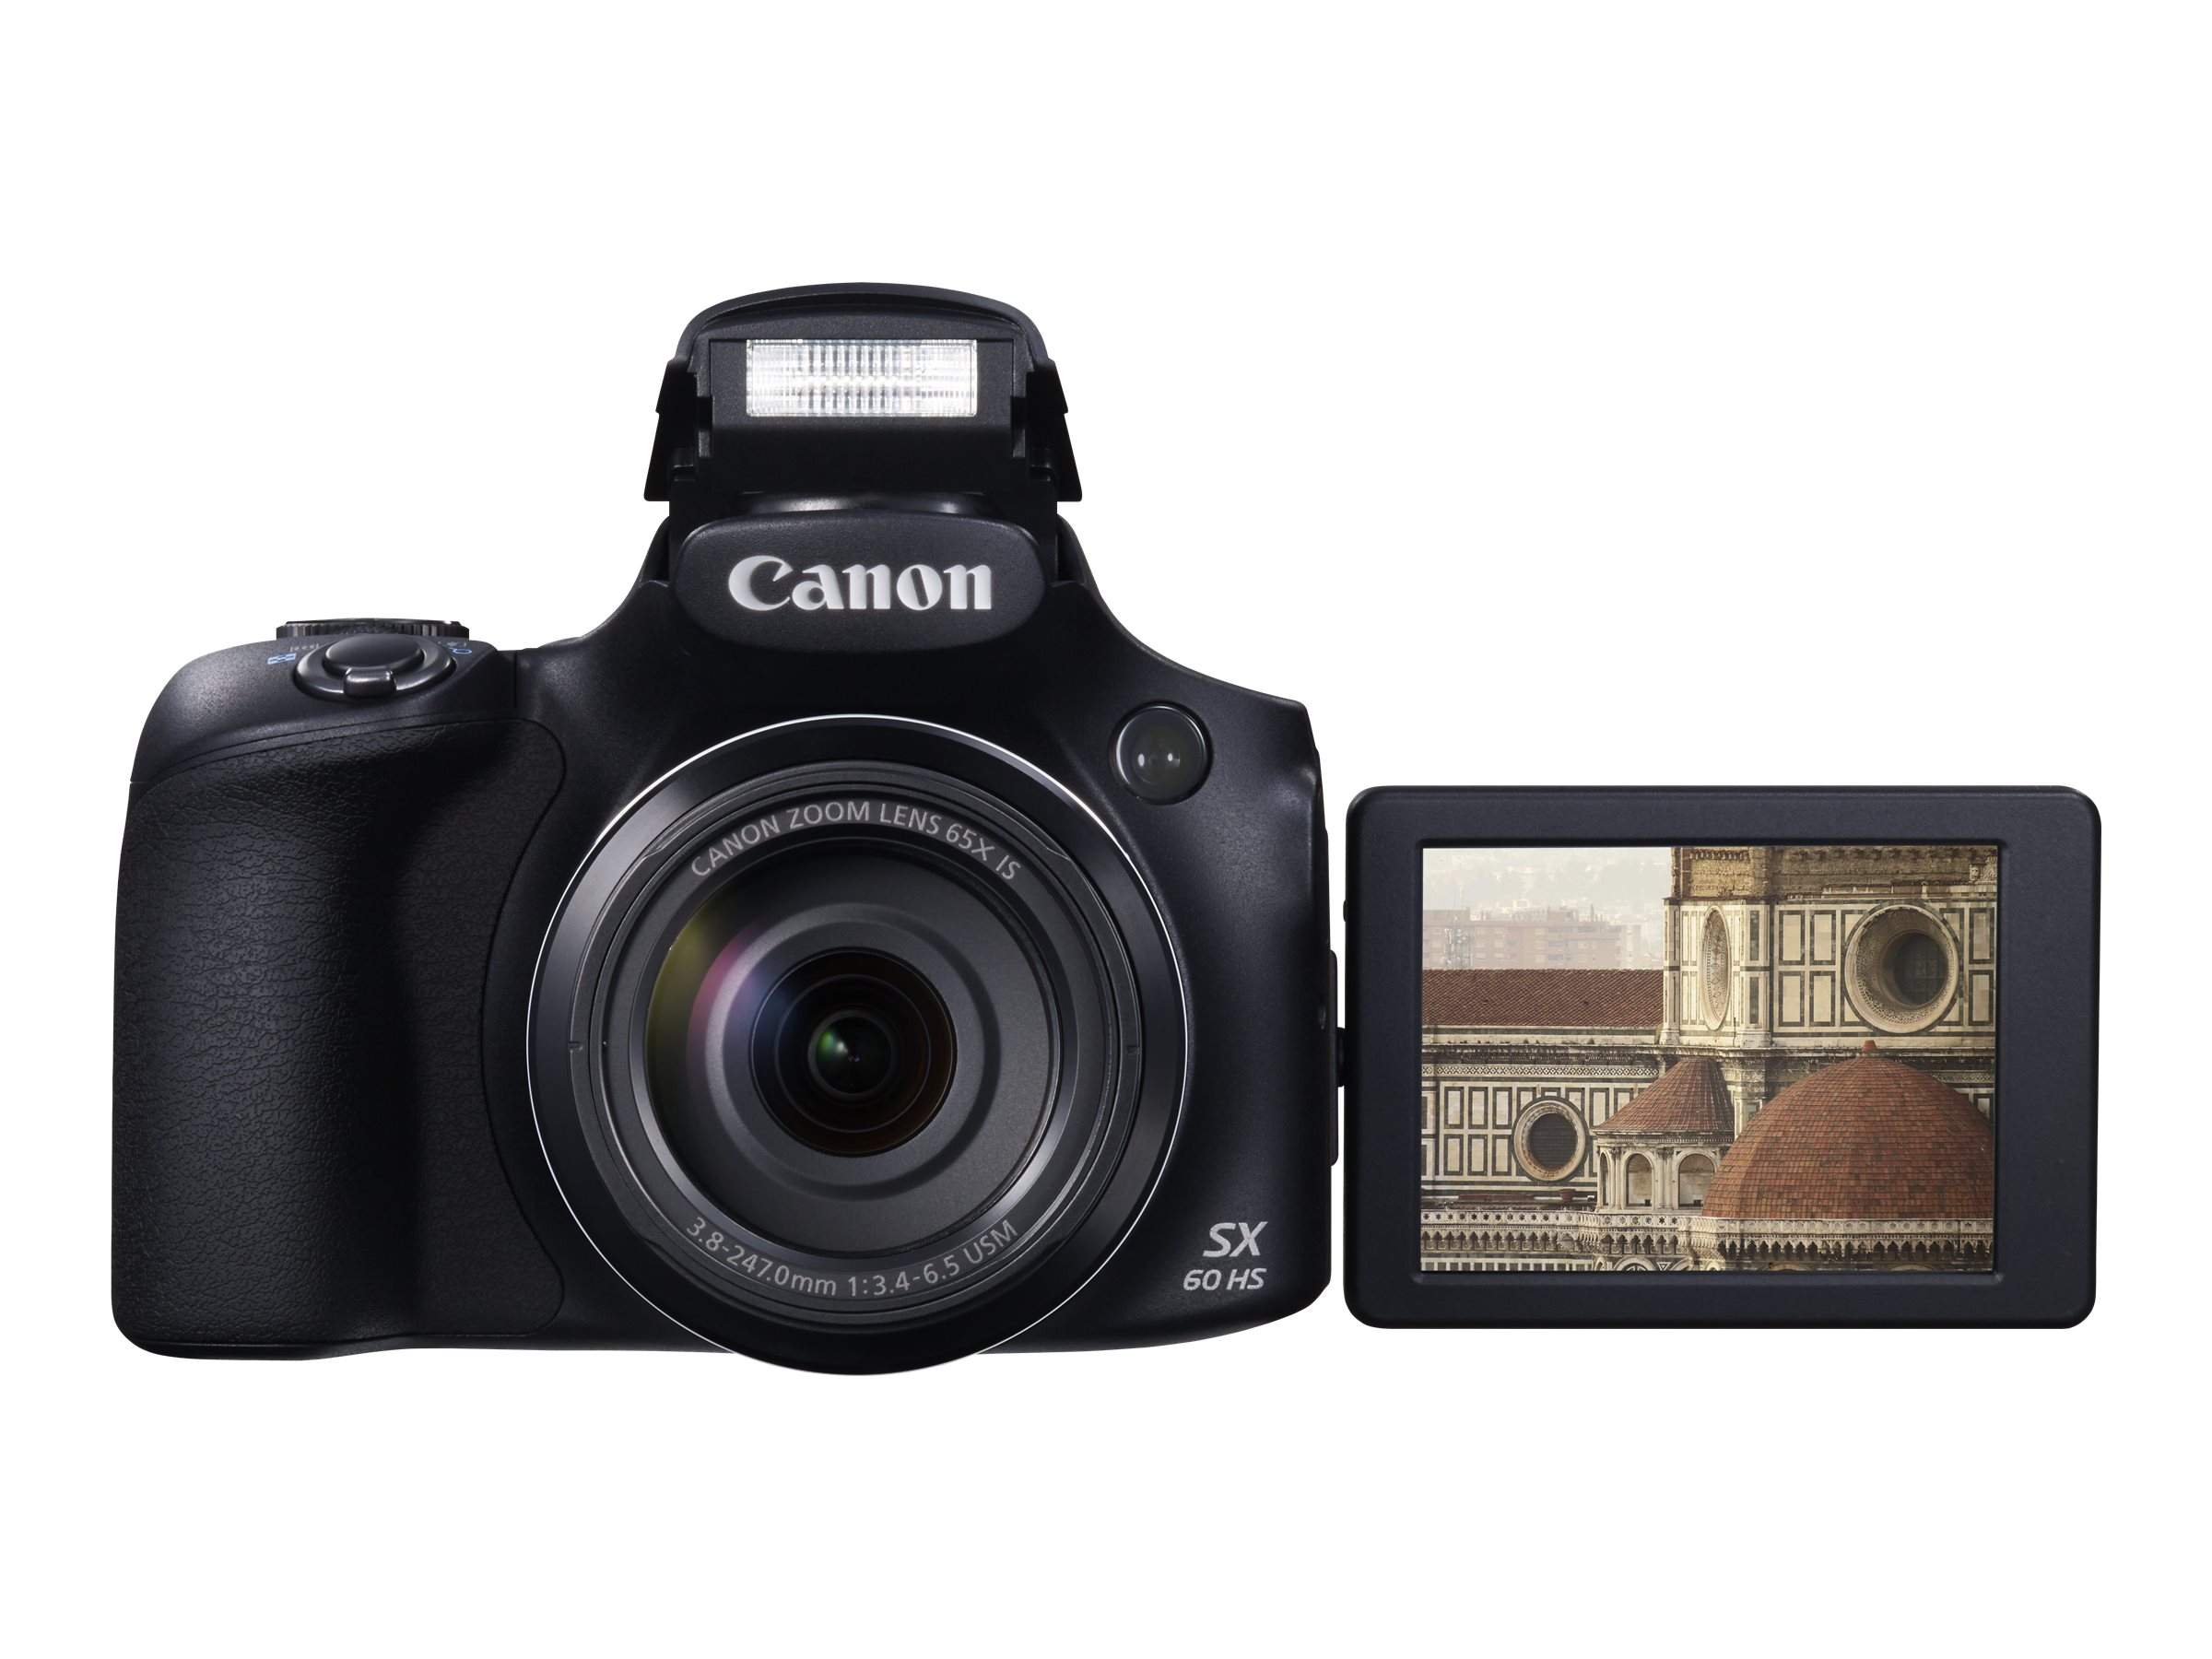 Canon PowerShot SX60 HS Digital Camera, 16.1MP, 65x Zoom, Black, 9543B001